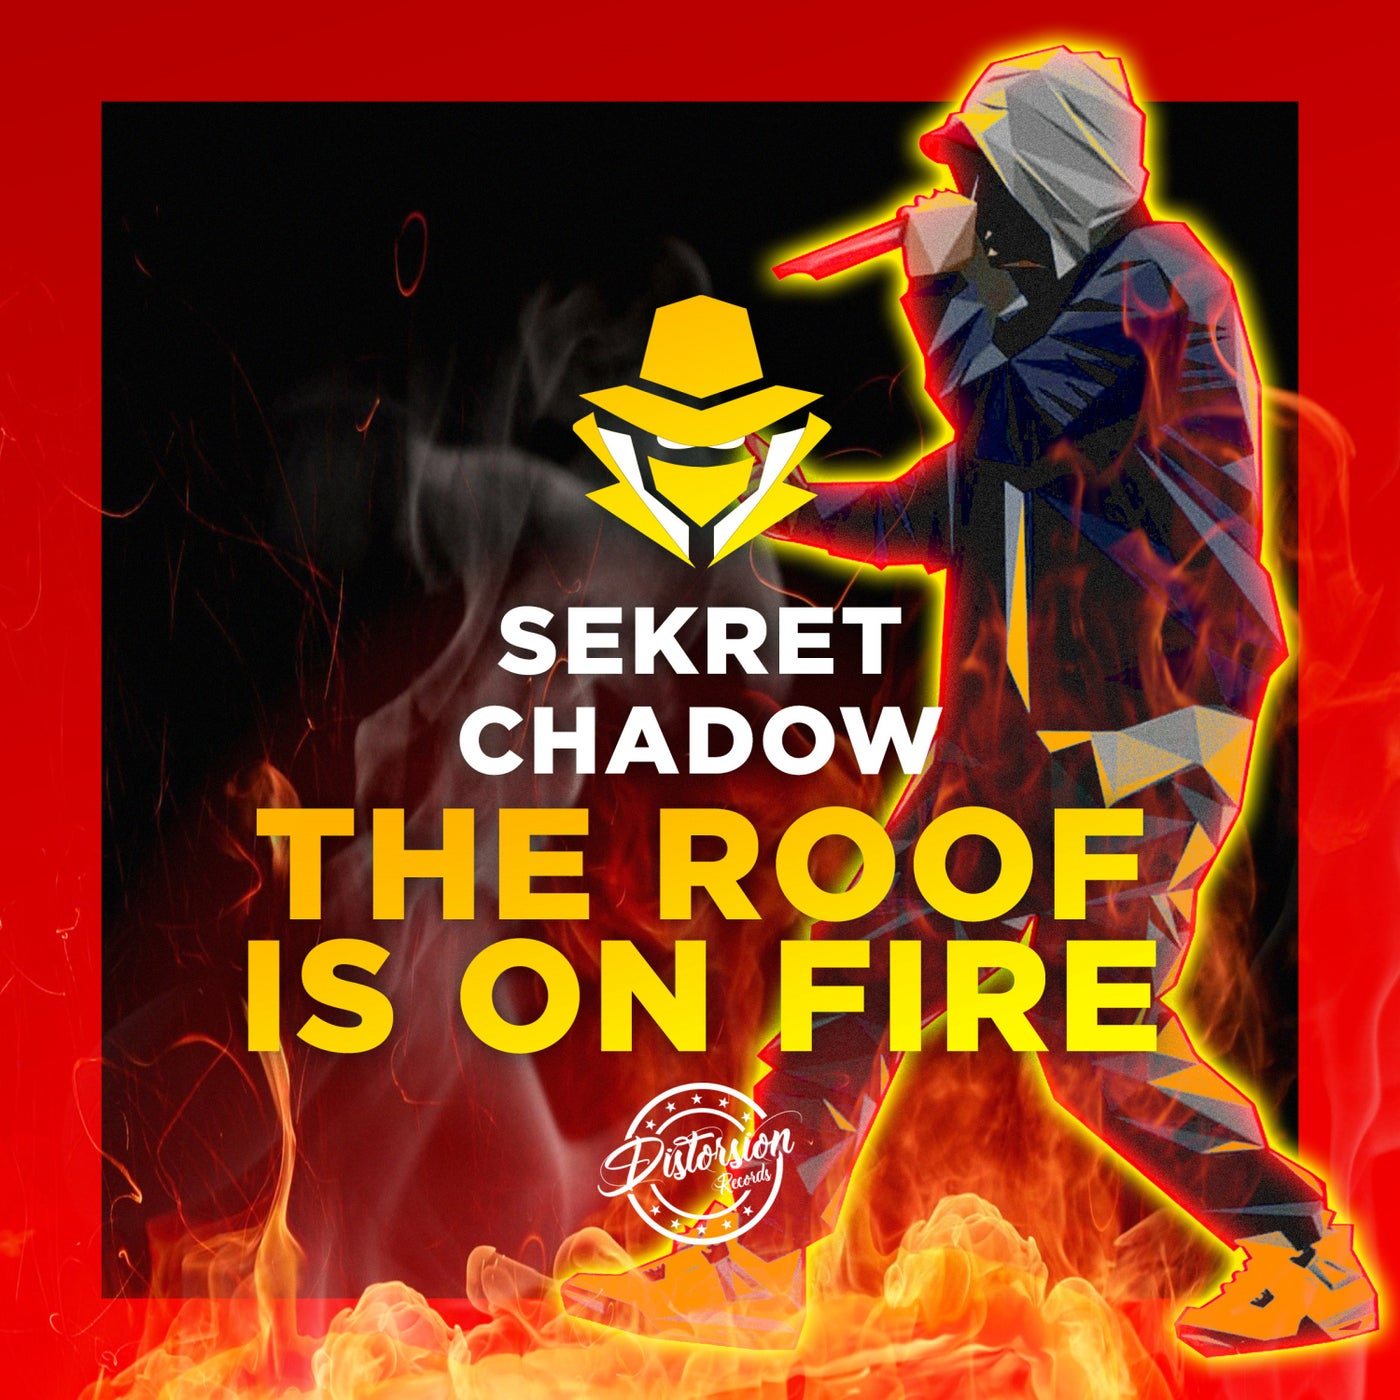 The Roof Is On Fire (Original Mix)